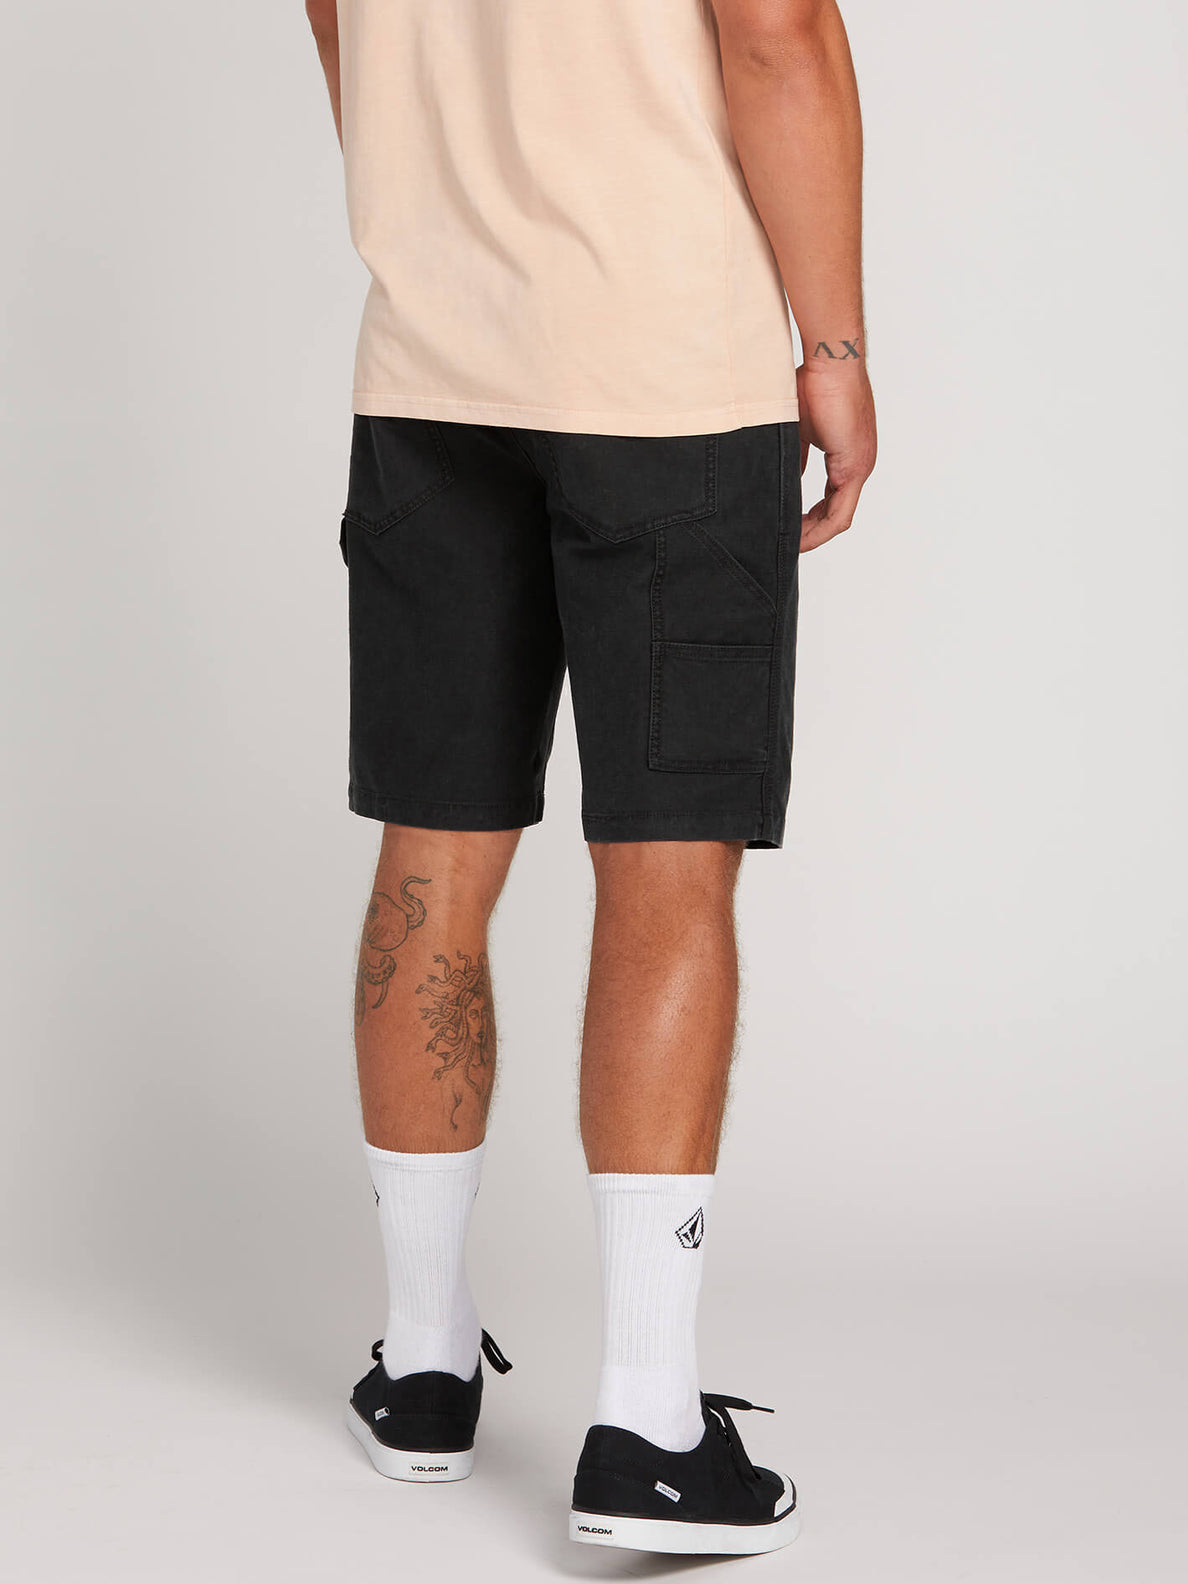 Whaler Utility Shorts In Black, Back View